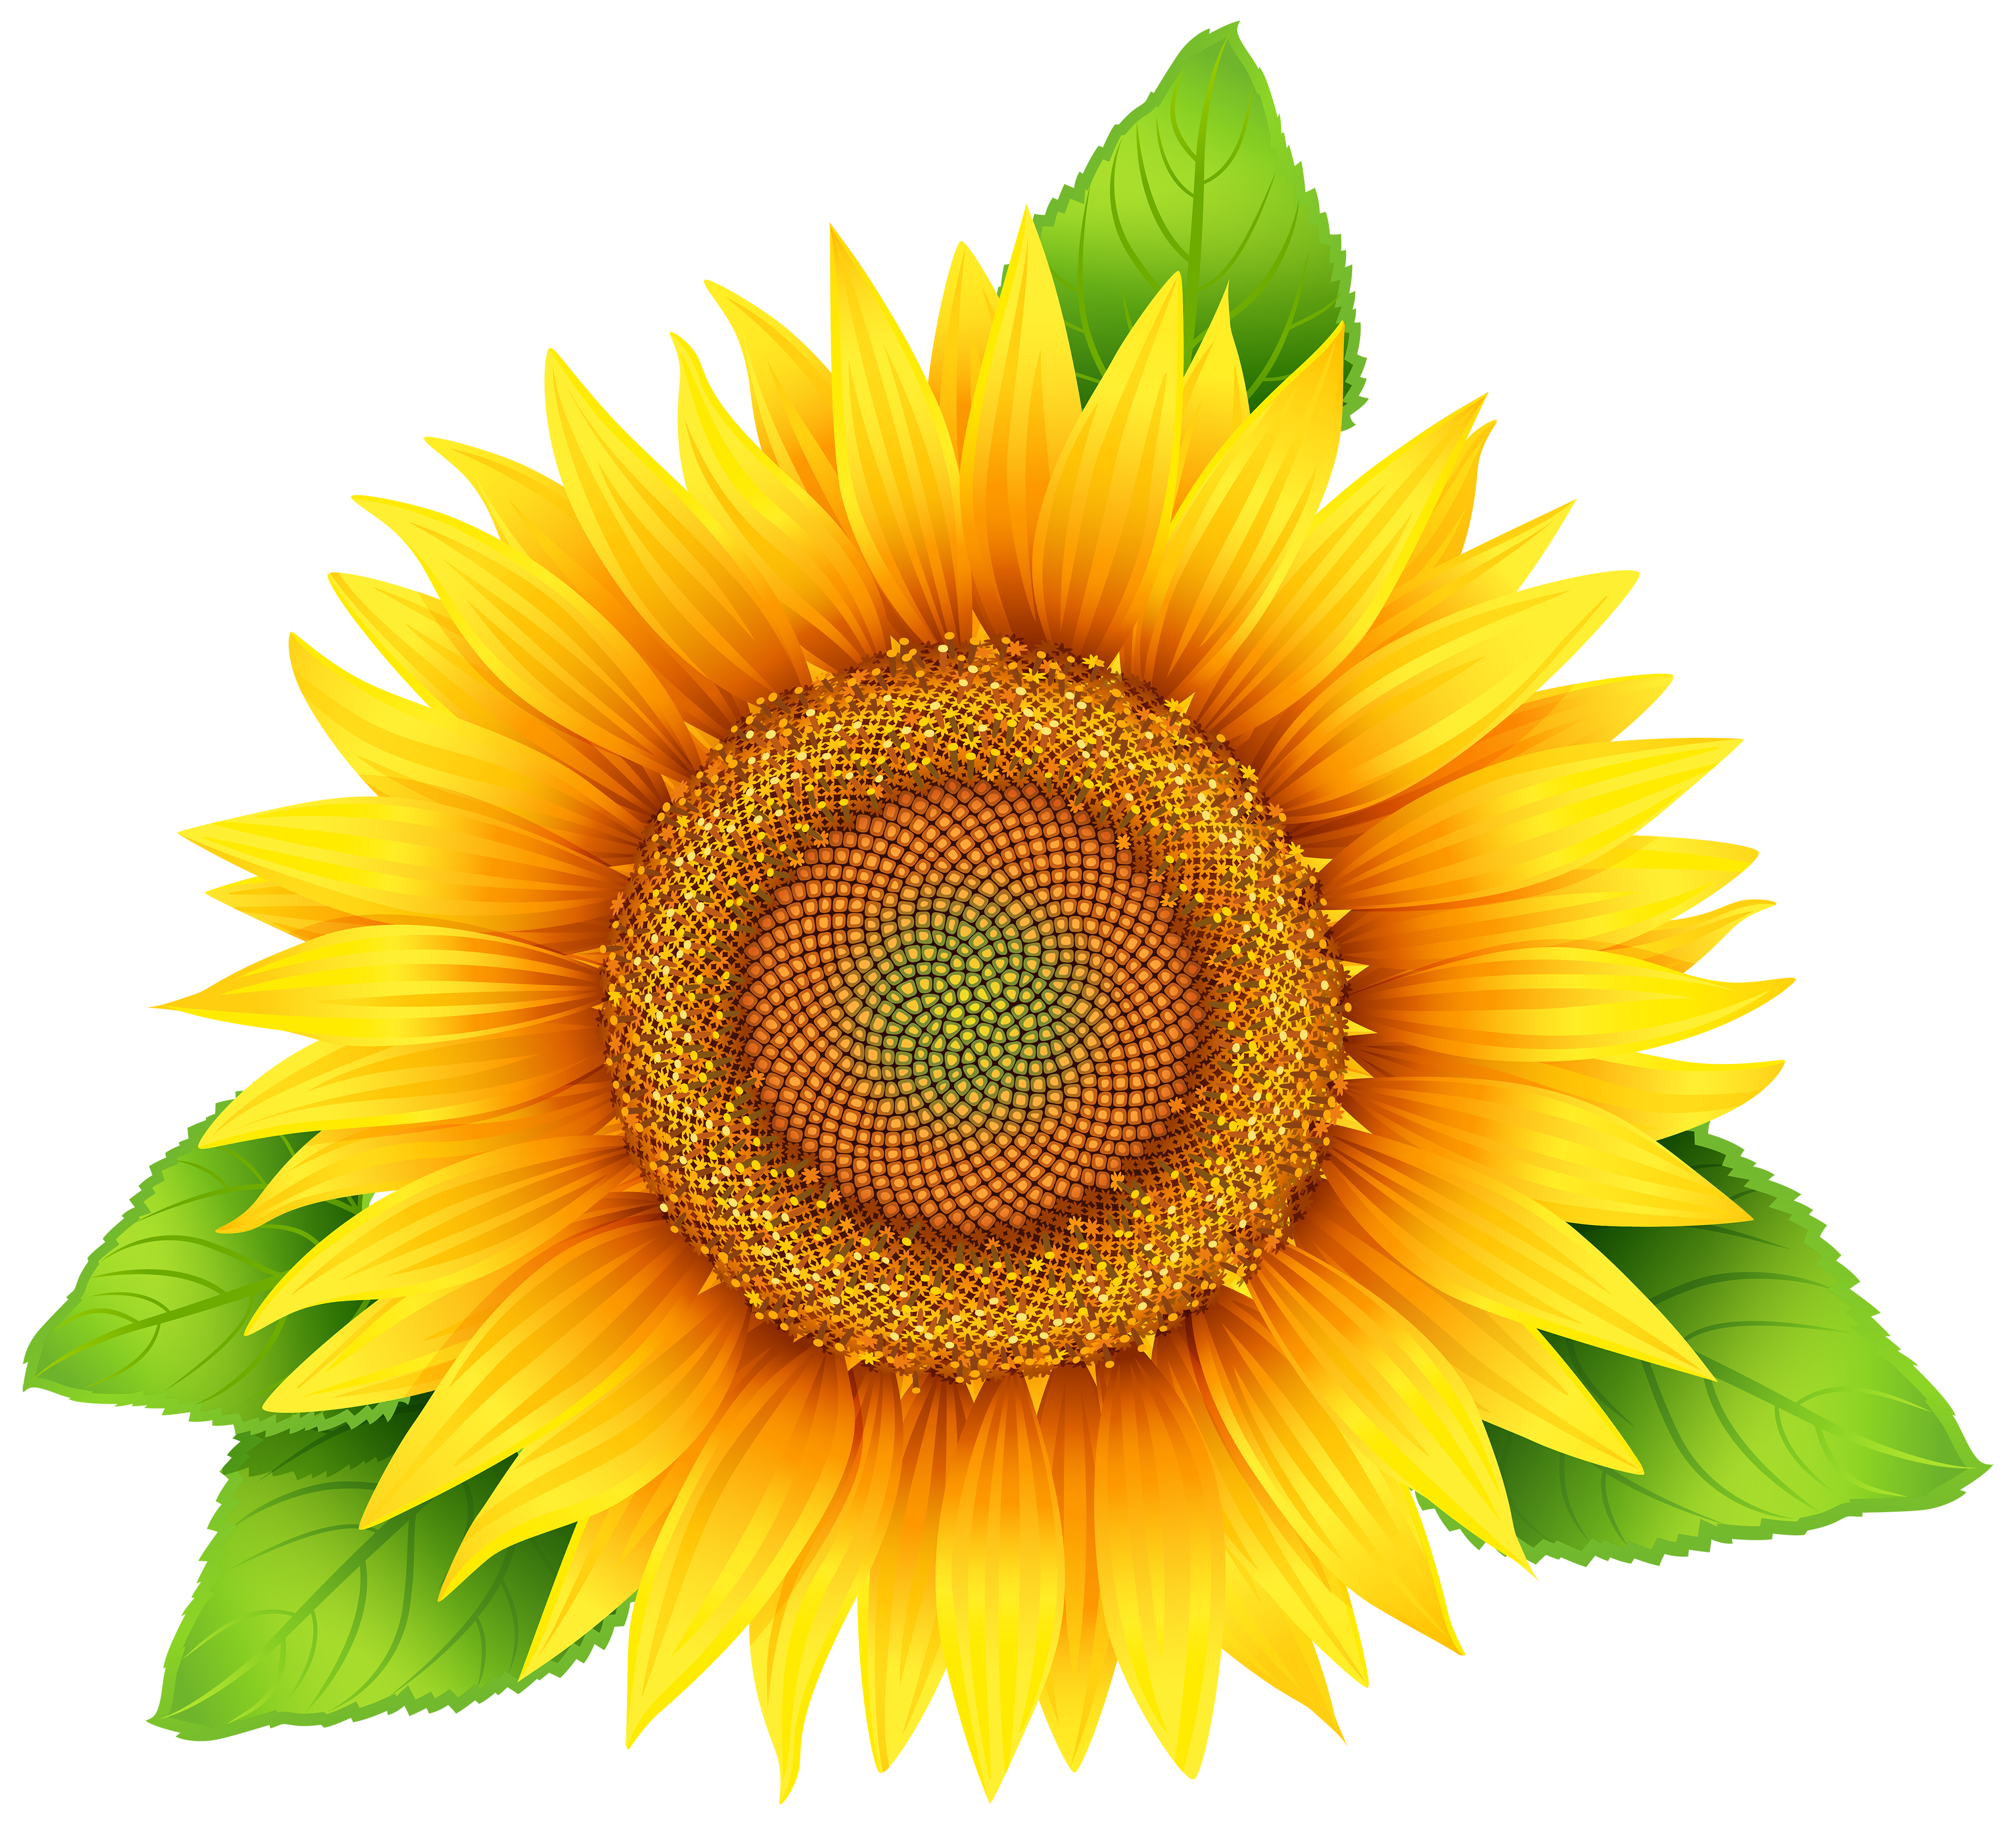 graphic free Sunflowers clipart transparent background. Sunflower png image gallery